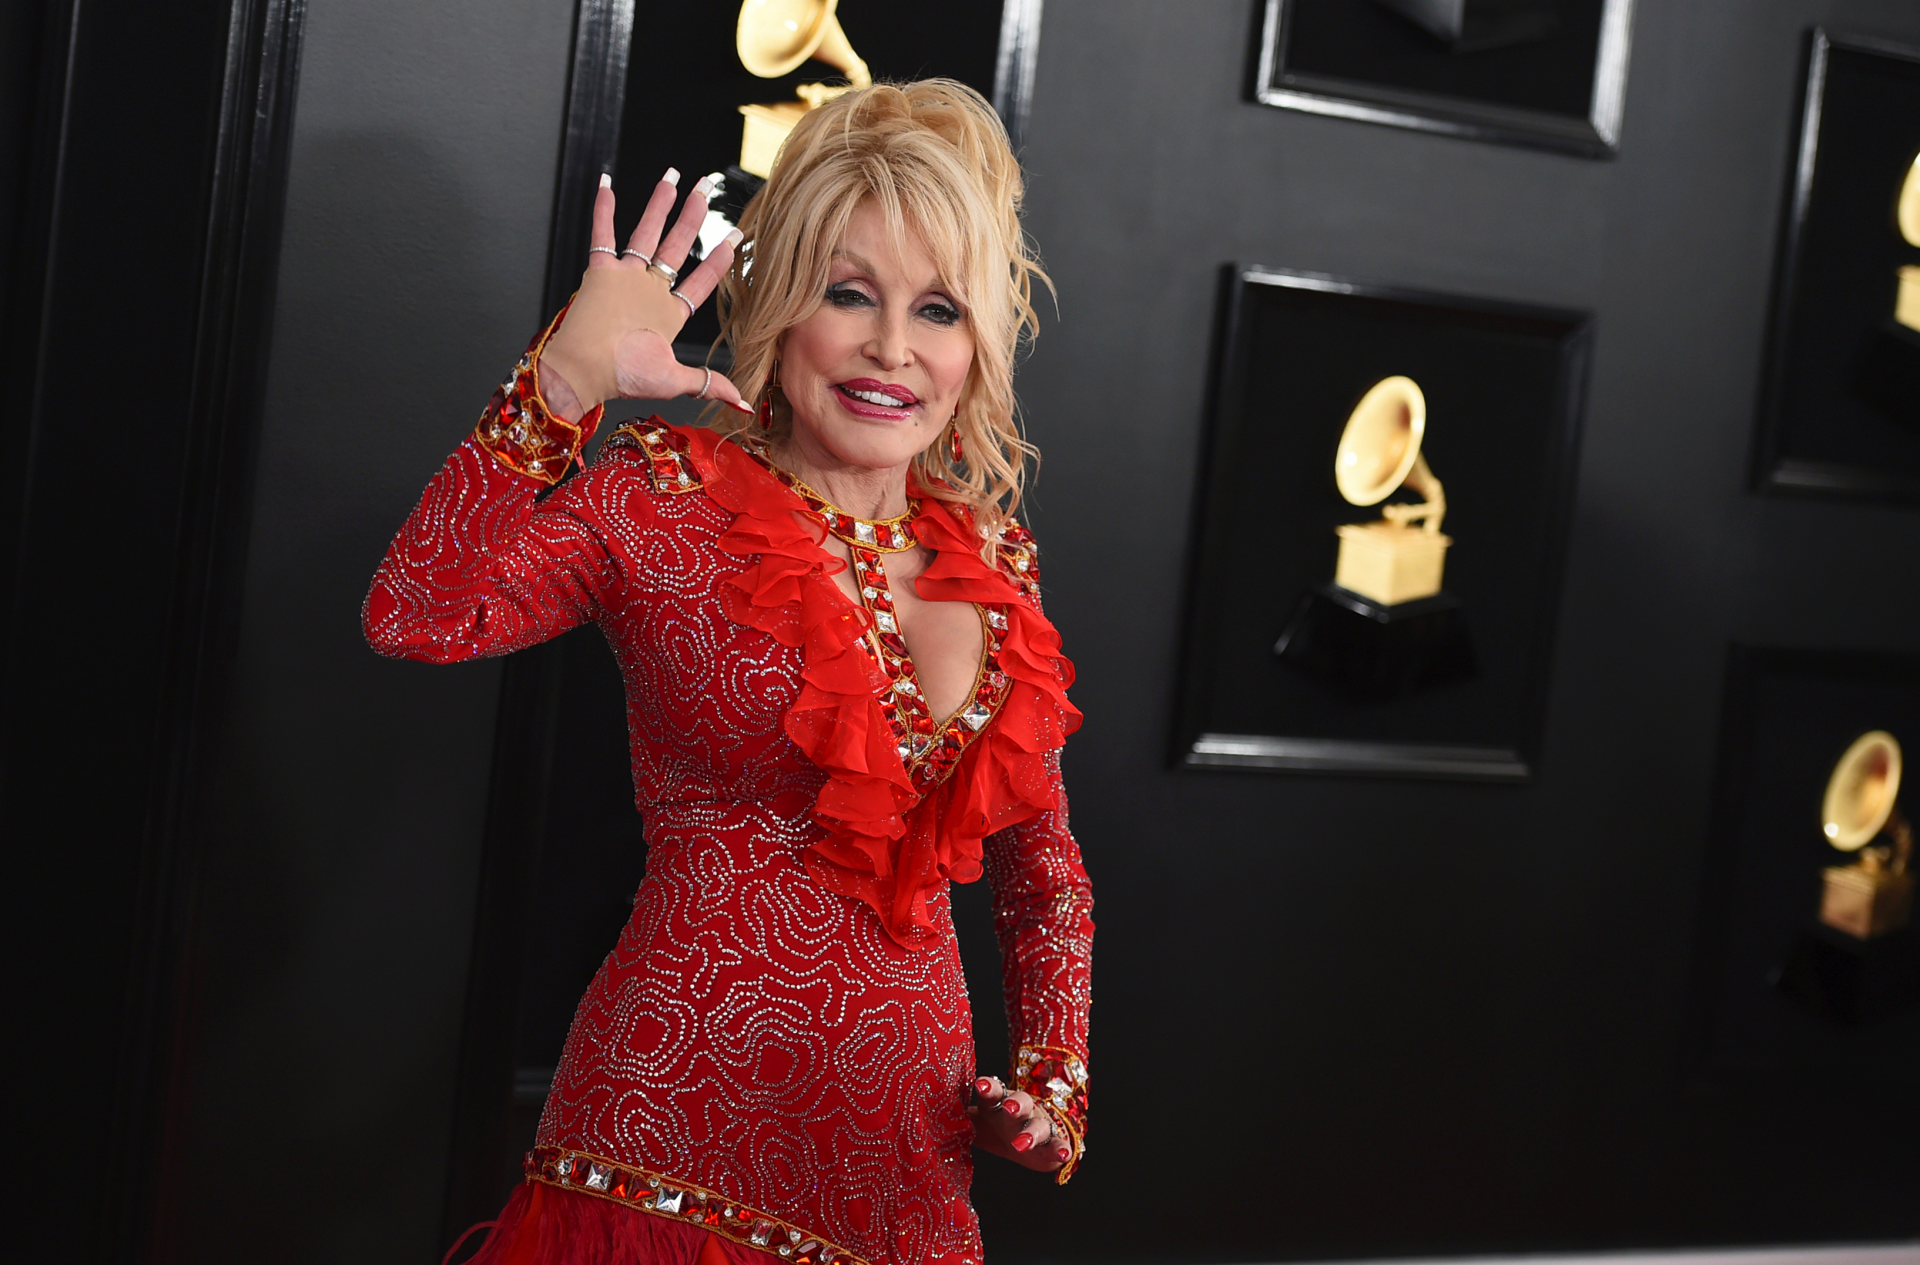 Dolly Parton says these two actresses could play her in a movie